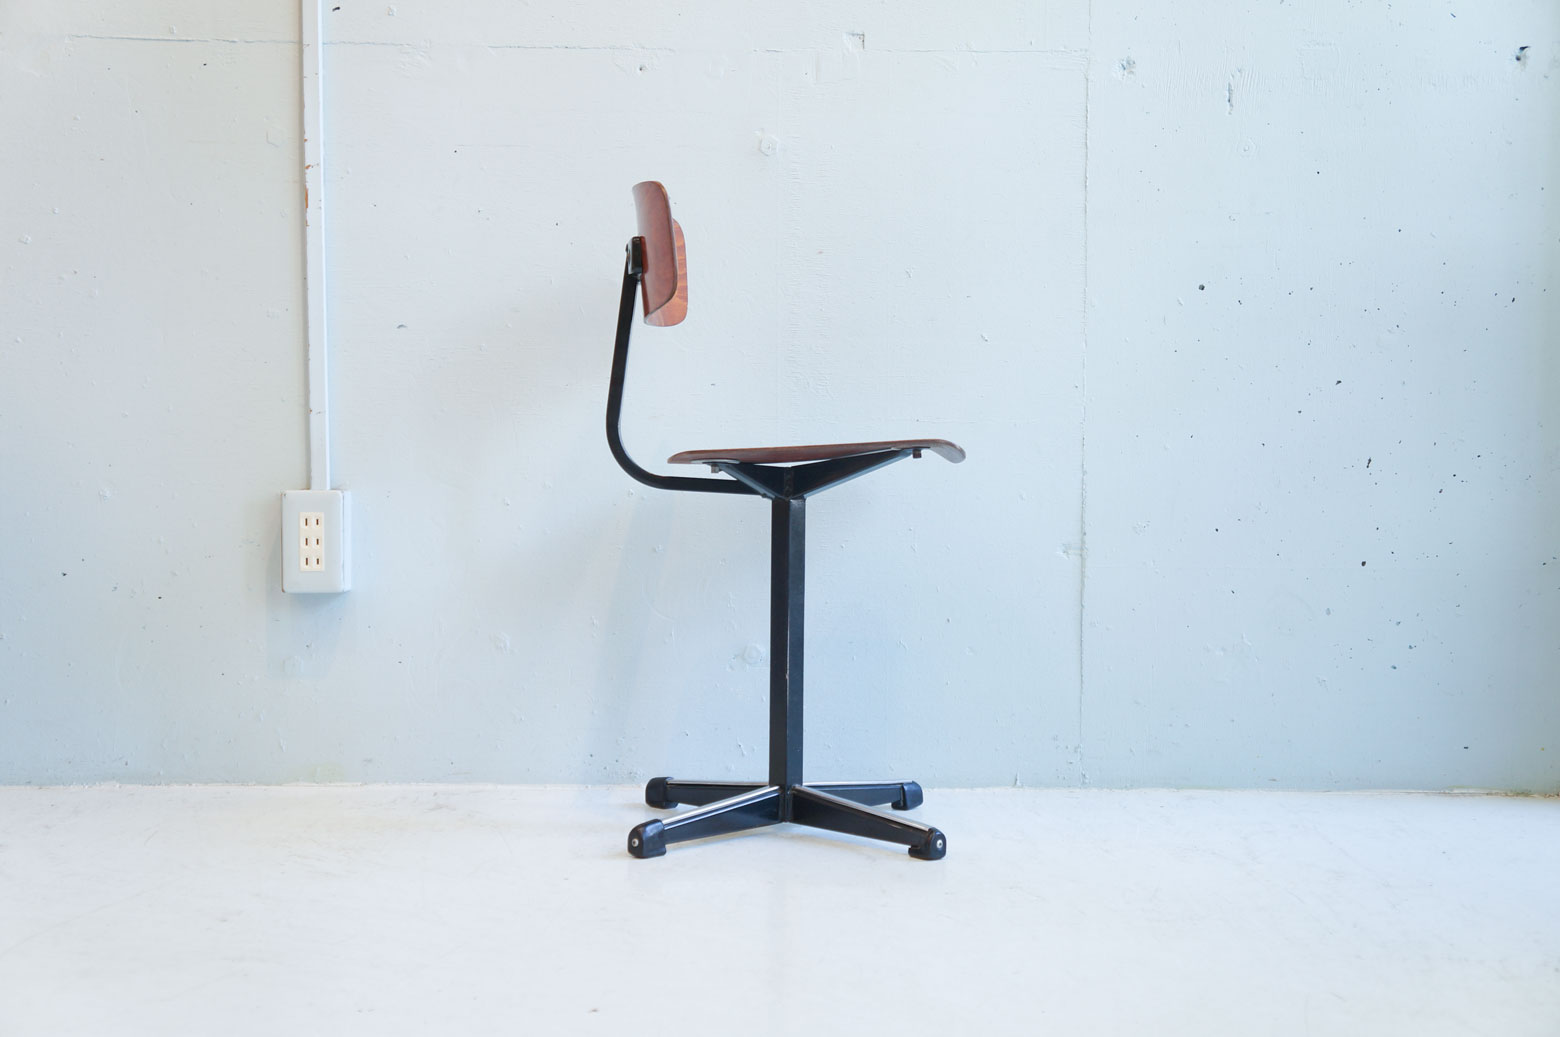 UK Vintage Kids Chair Industrial design/イギリス ヴィンテージ キッズ チェア インダストリアル デザイン 1